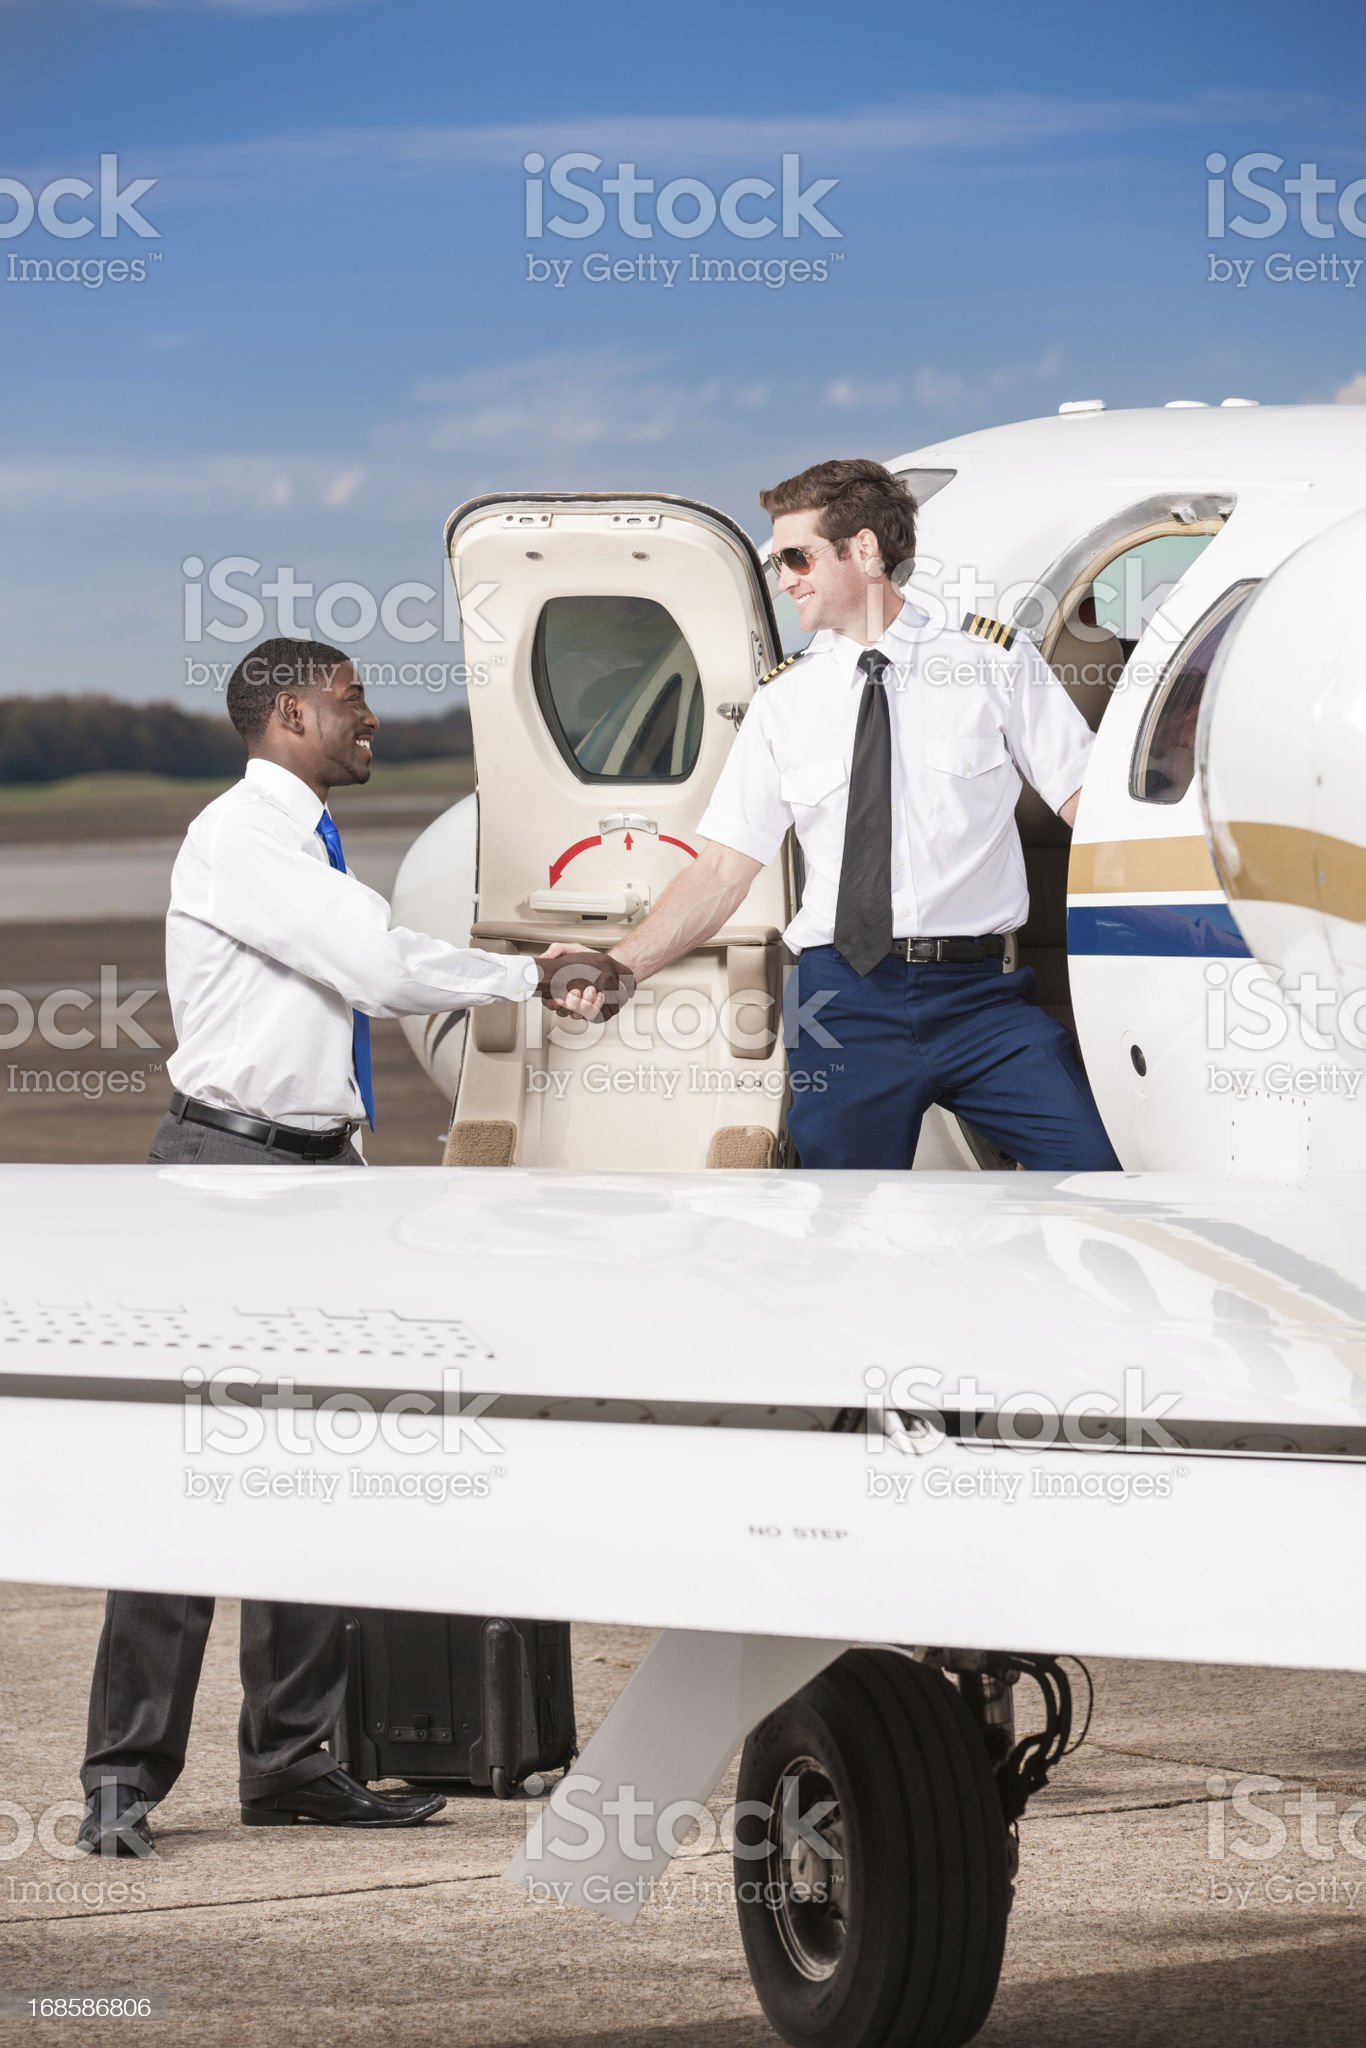 Pilot of Private Jet Greeting Business Traveler royalty-free stock photo